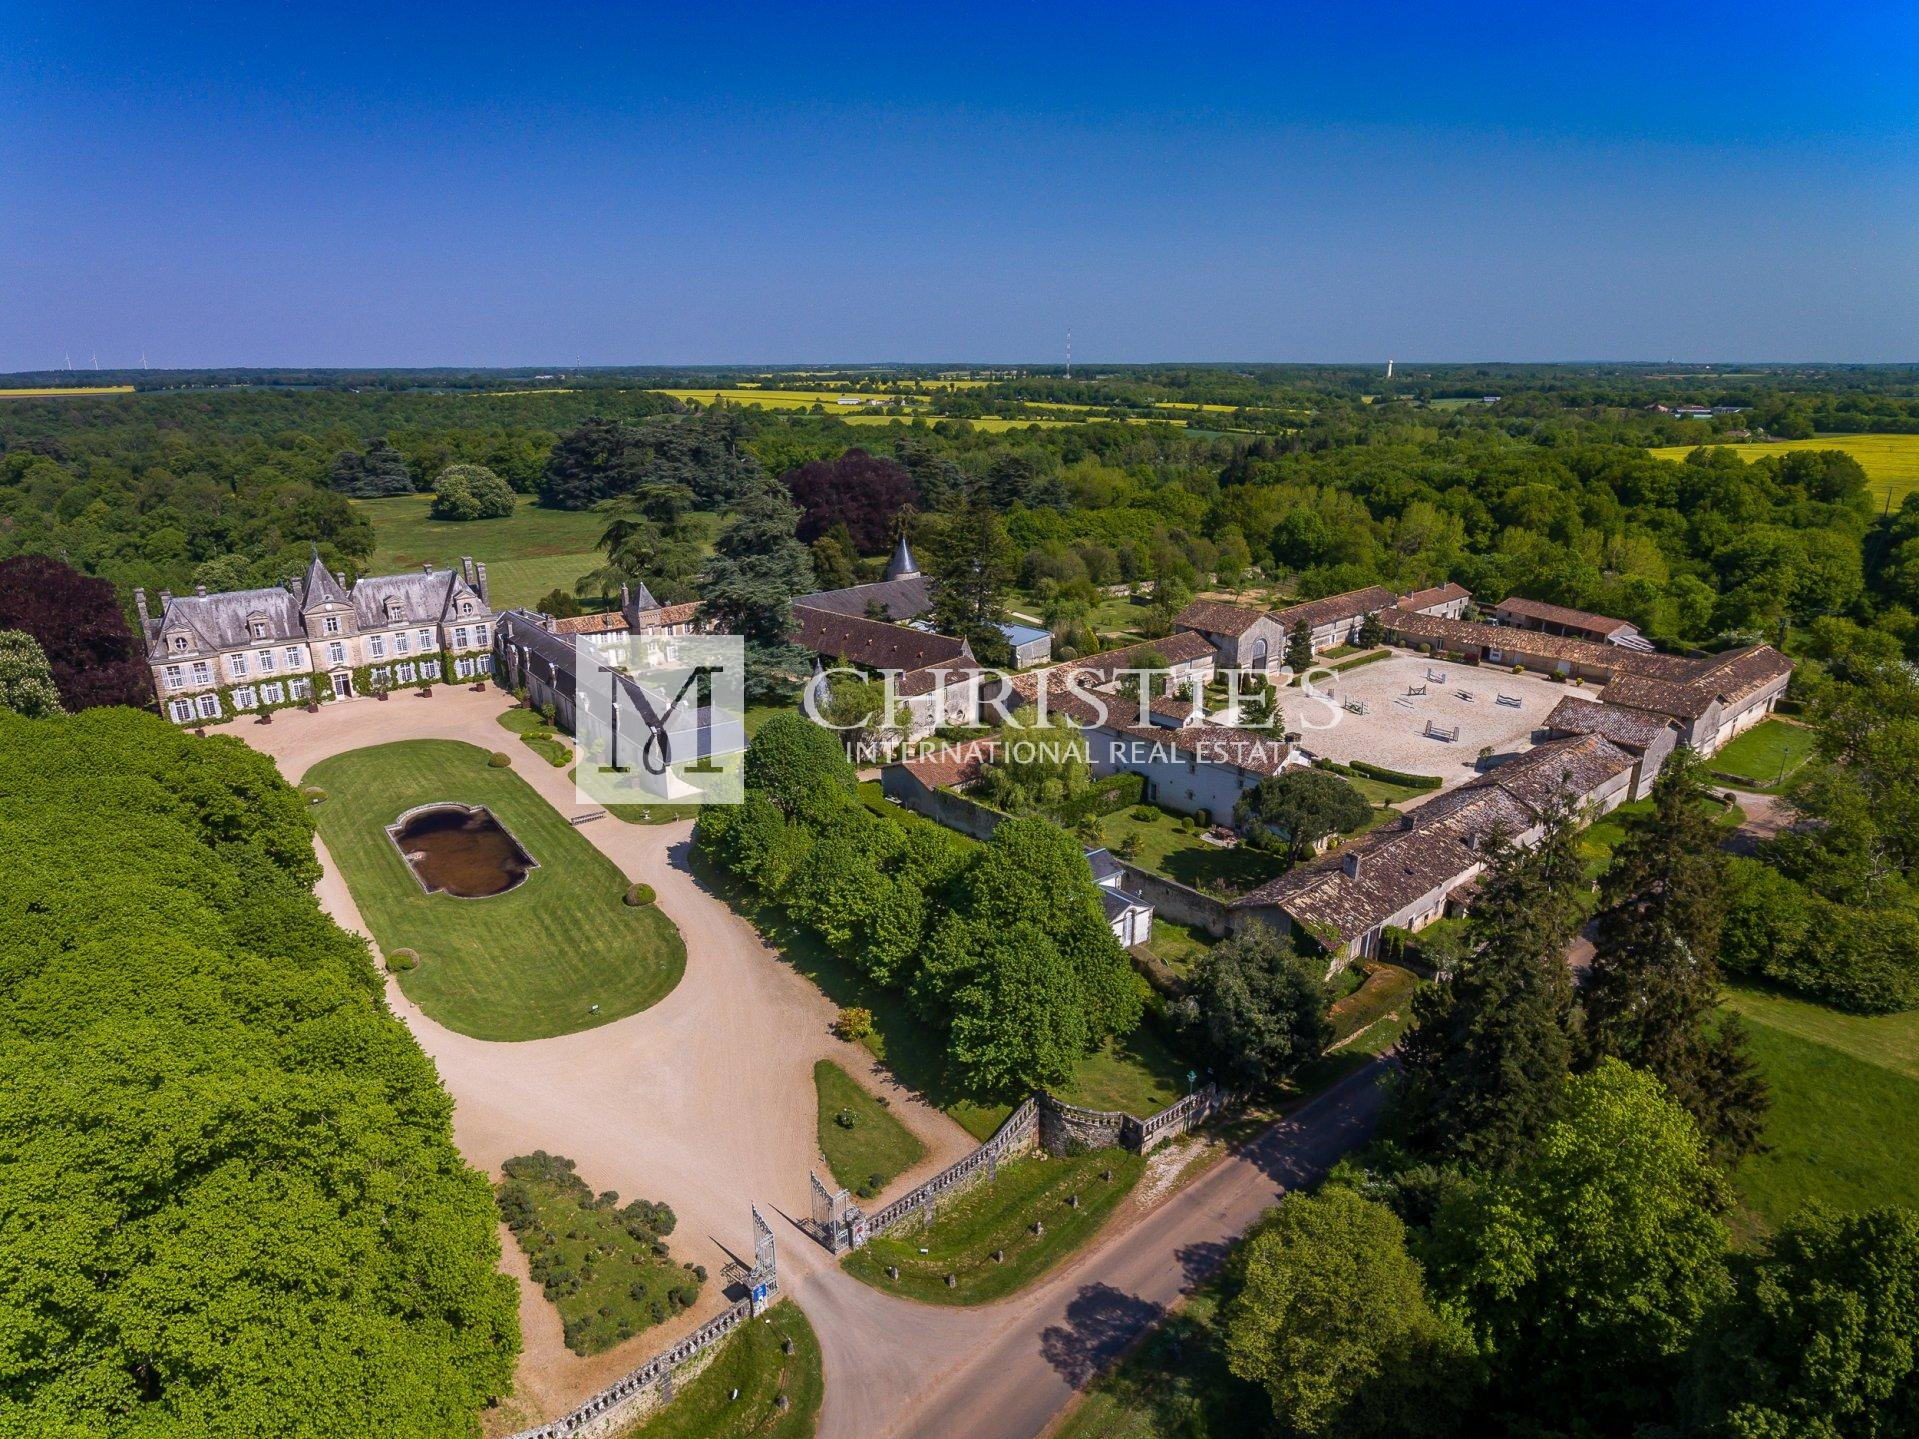 Aerial view of massive chateau estate